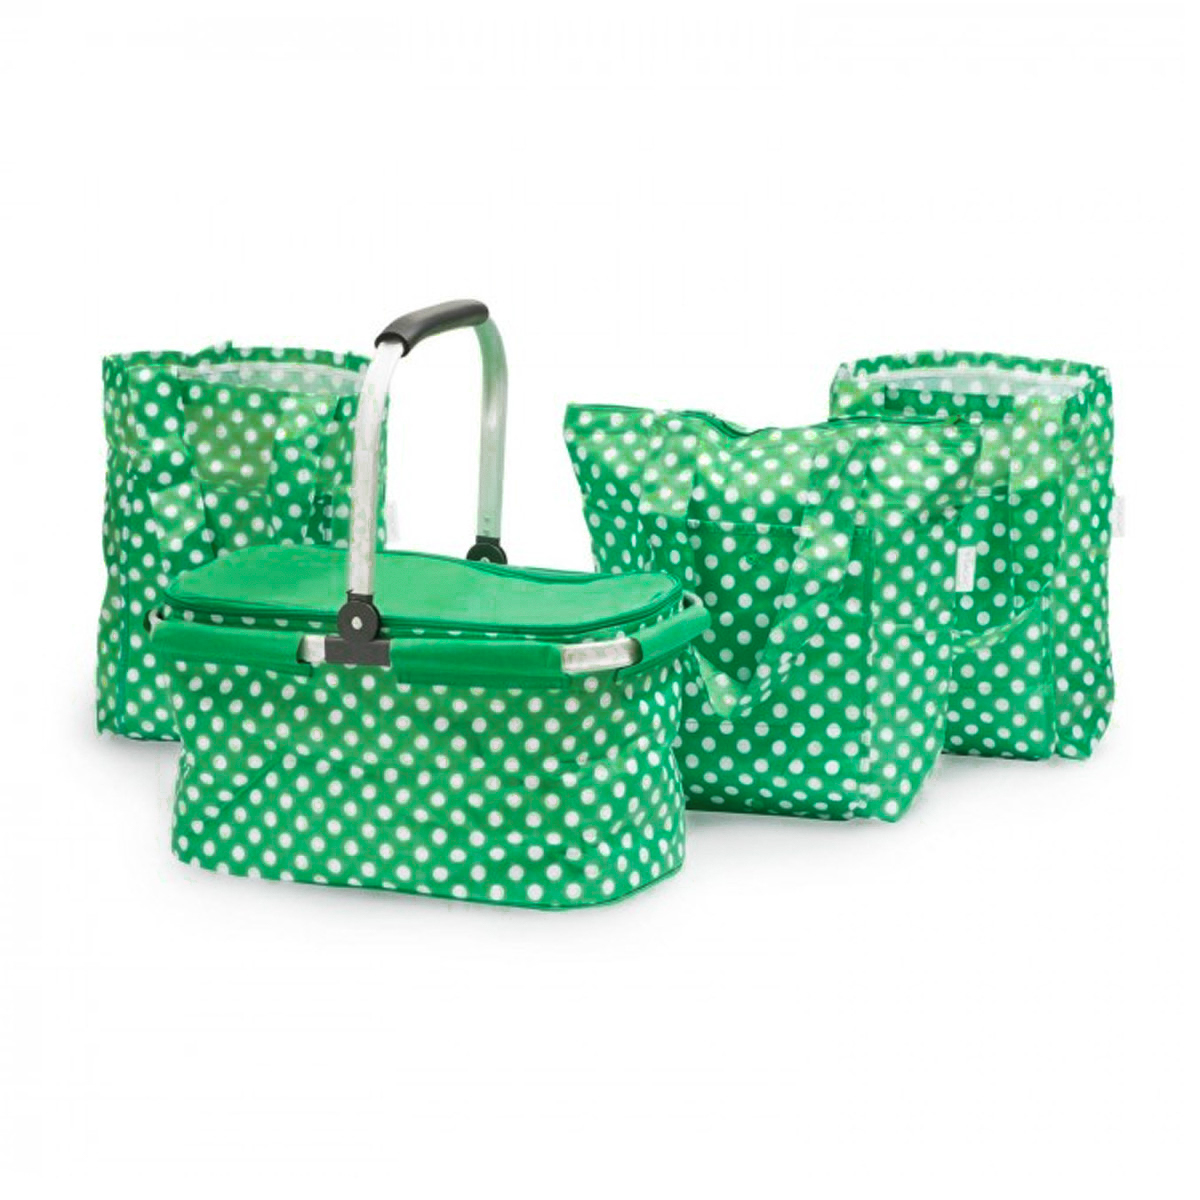 4pc Sachi Insulated Shopping Picnic Basket Collapsible Cooler with Handles Reusable Foldable Tote Bags Set